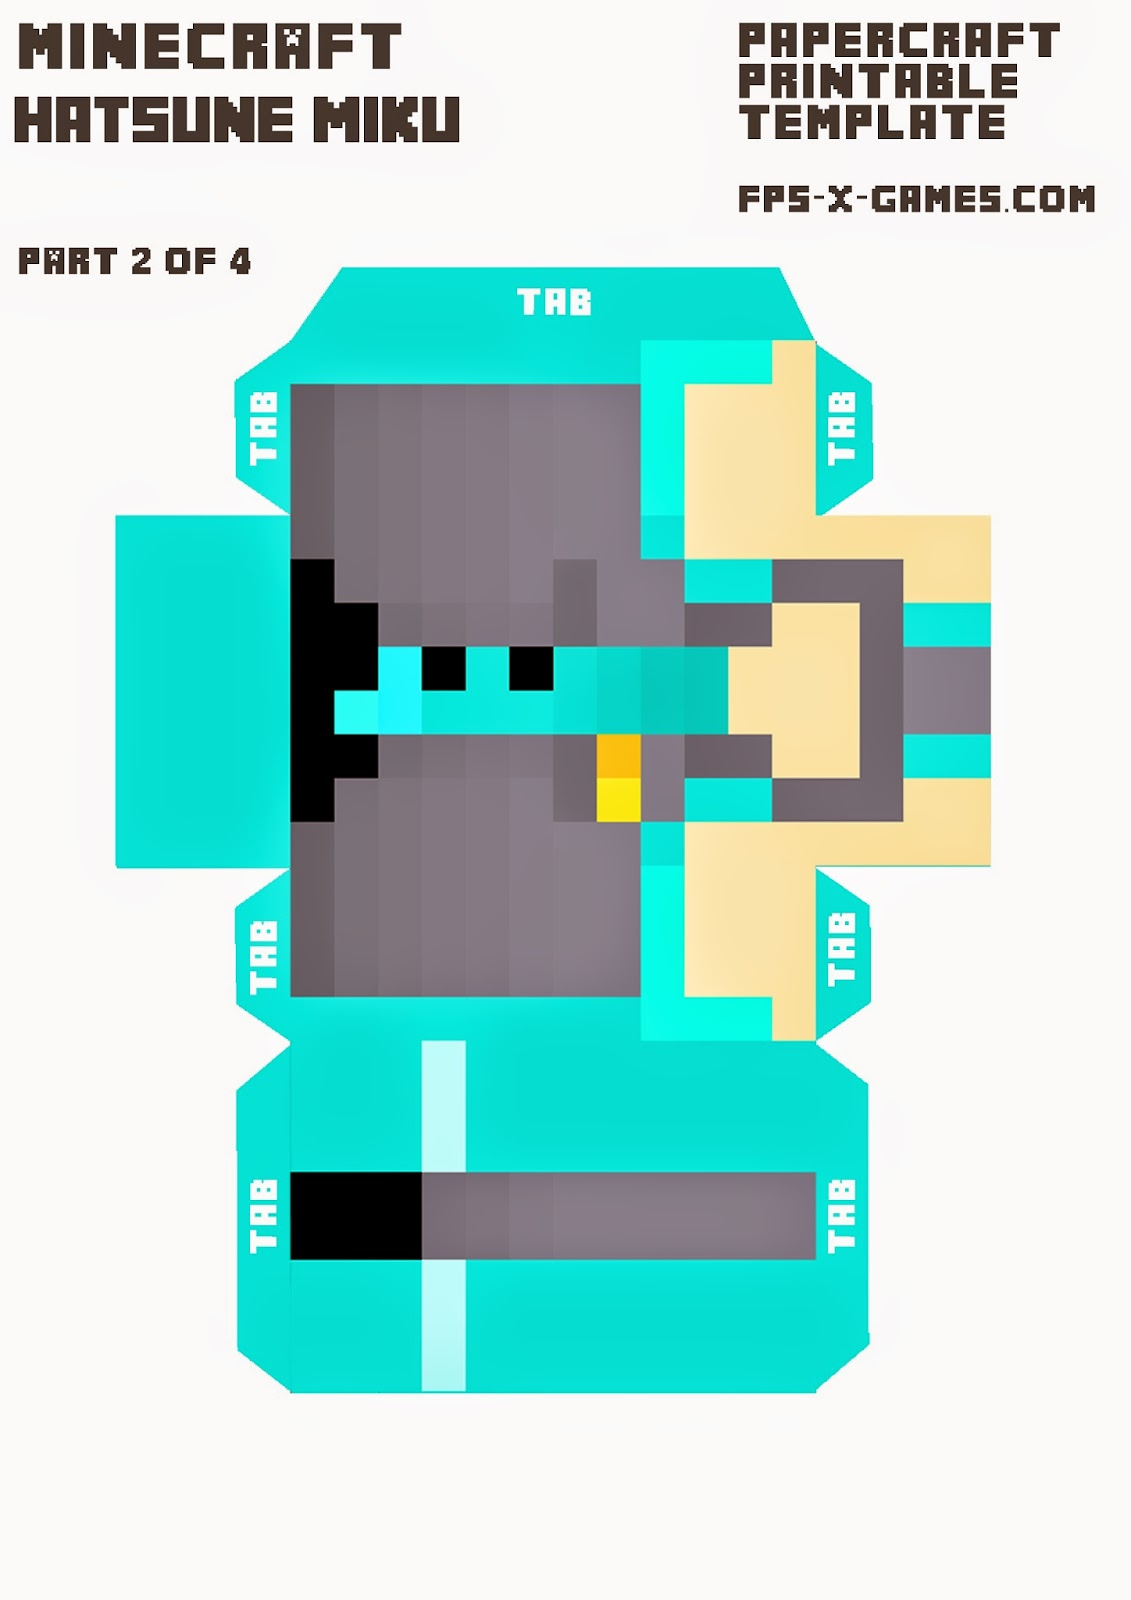 Large Printable Hatsune Miku Minecraft Character 2 of 4